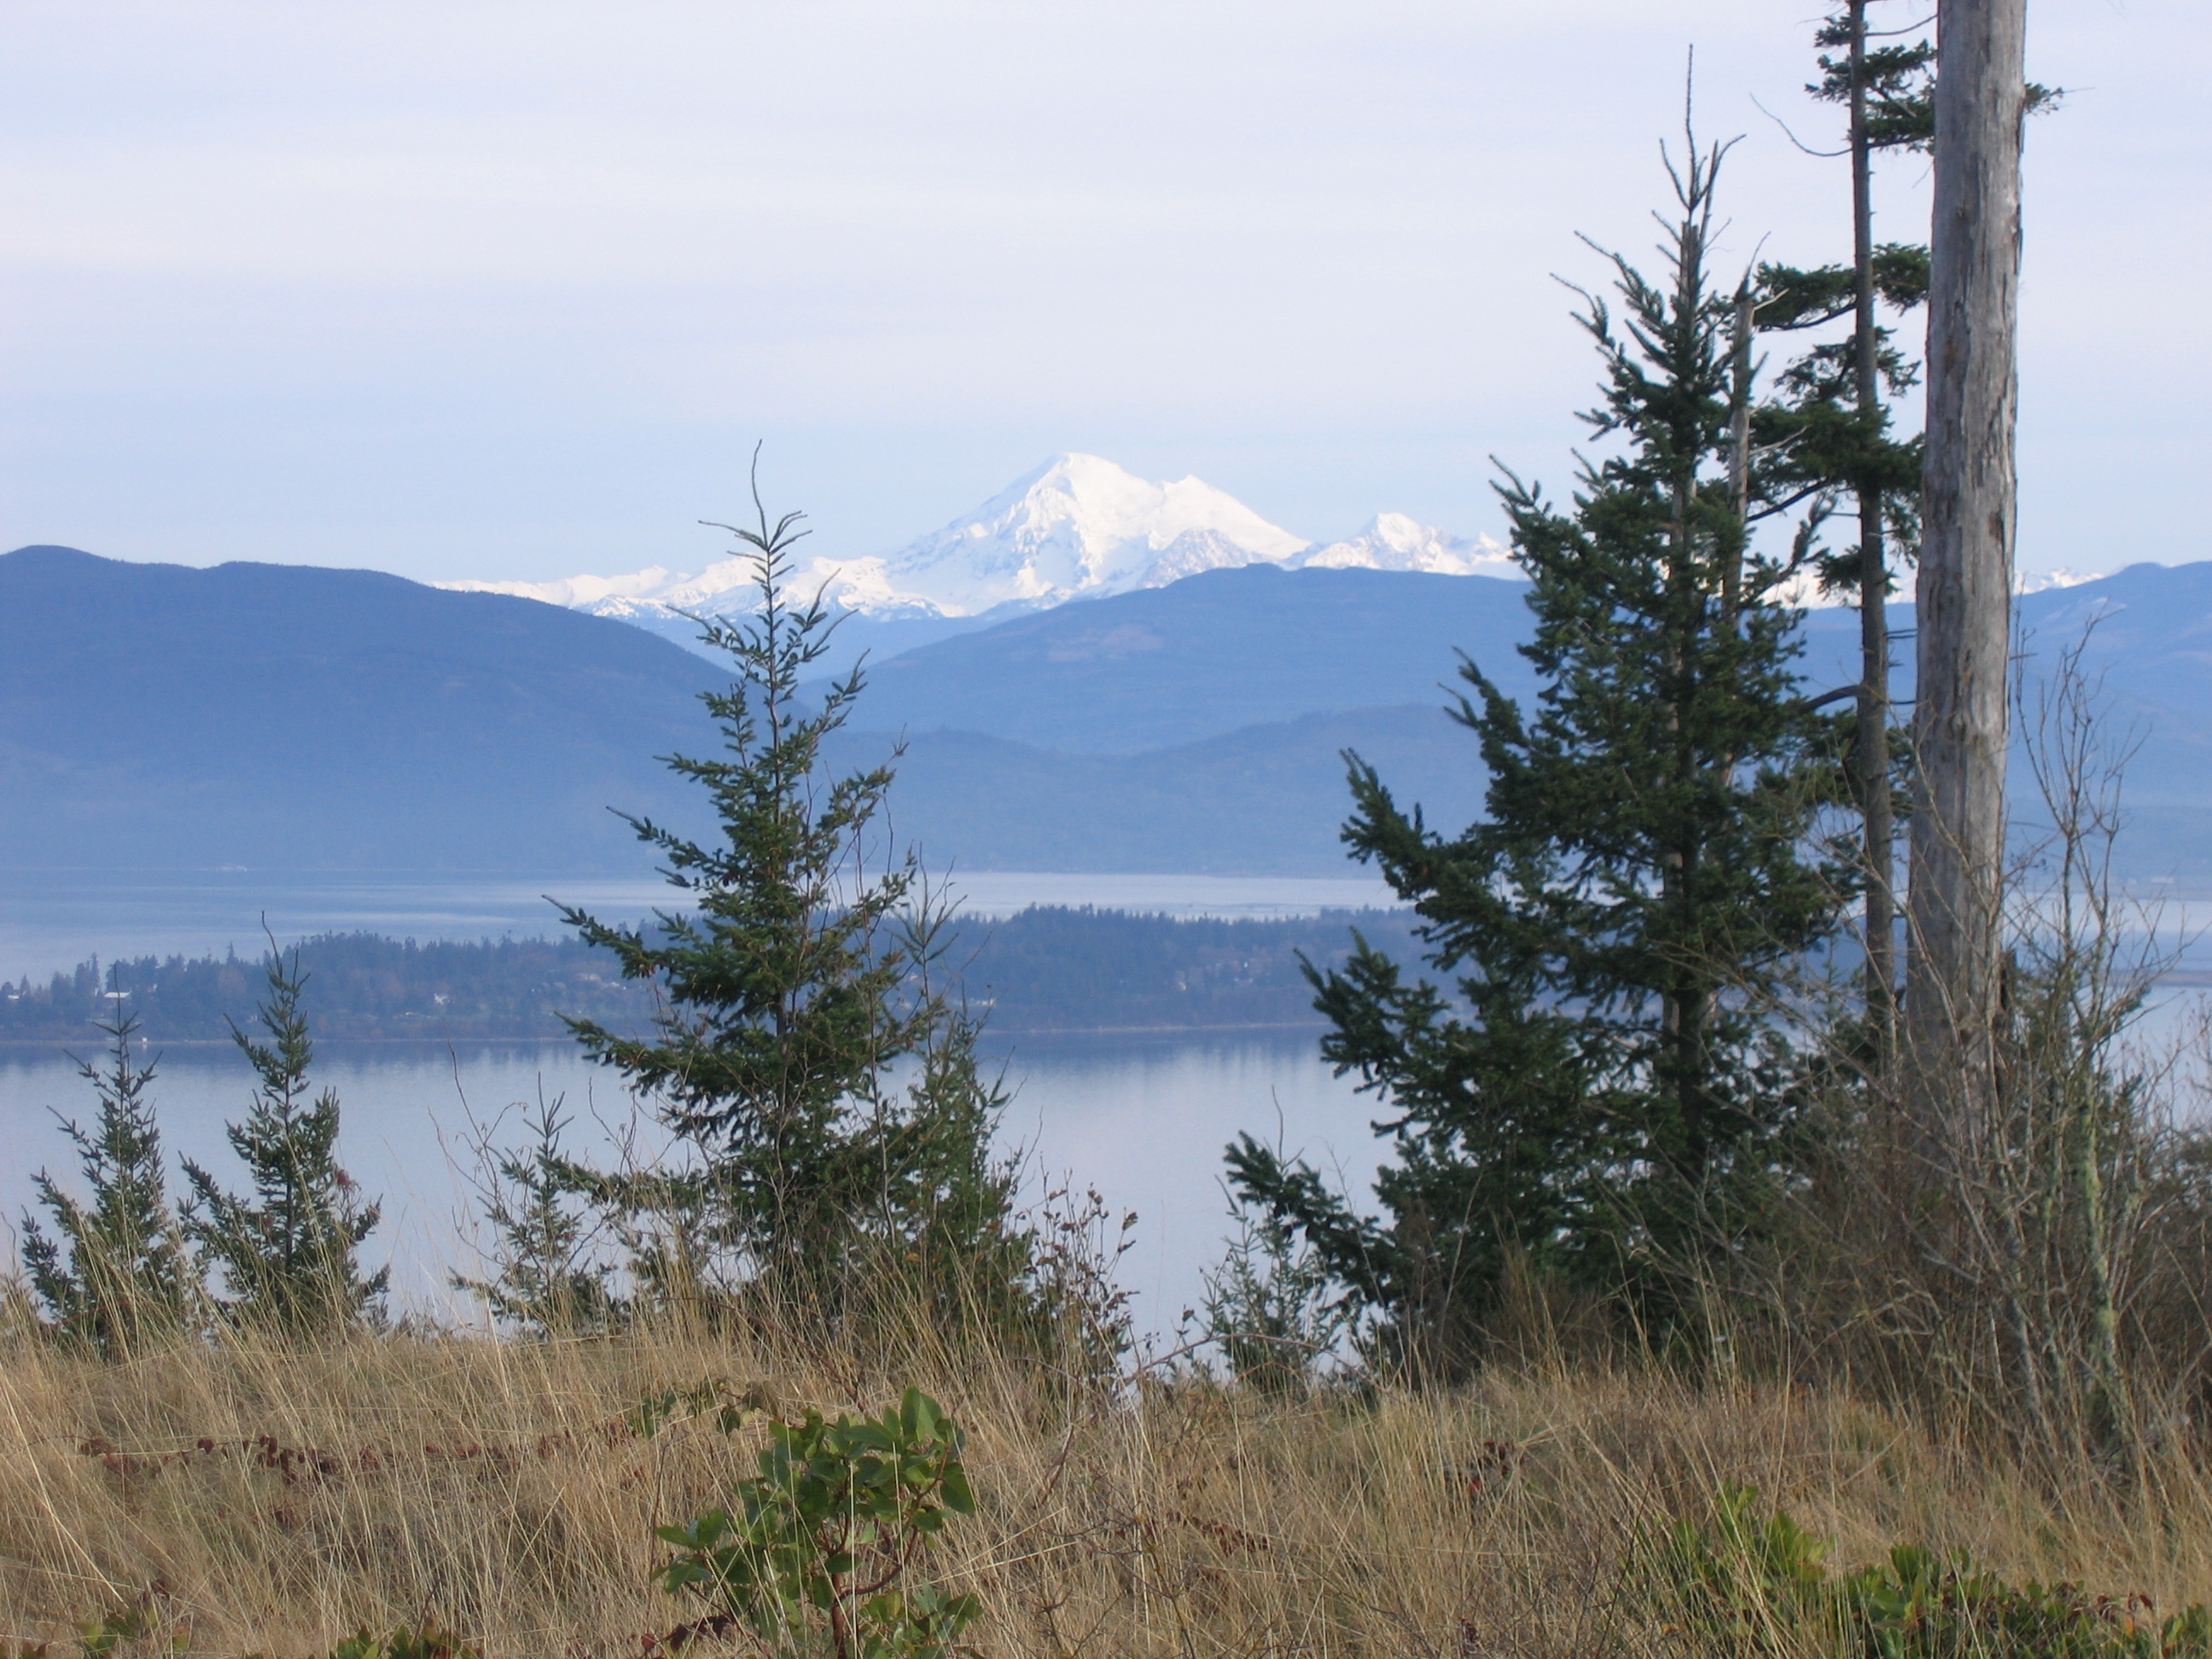 View from the summit of Guemes Mountain of Mount Baker, December 2009. Photograph credit: Skagit Land Trust staff.